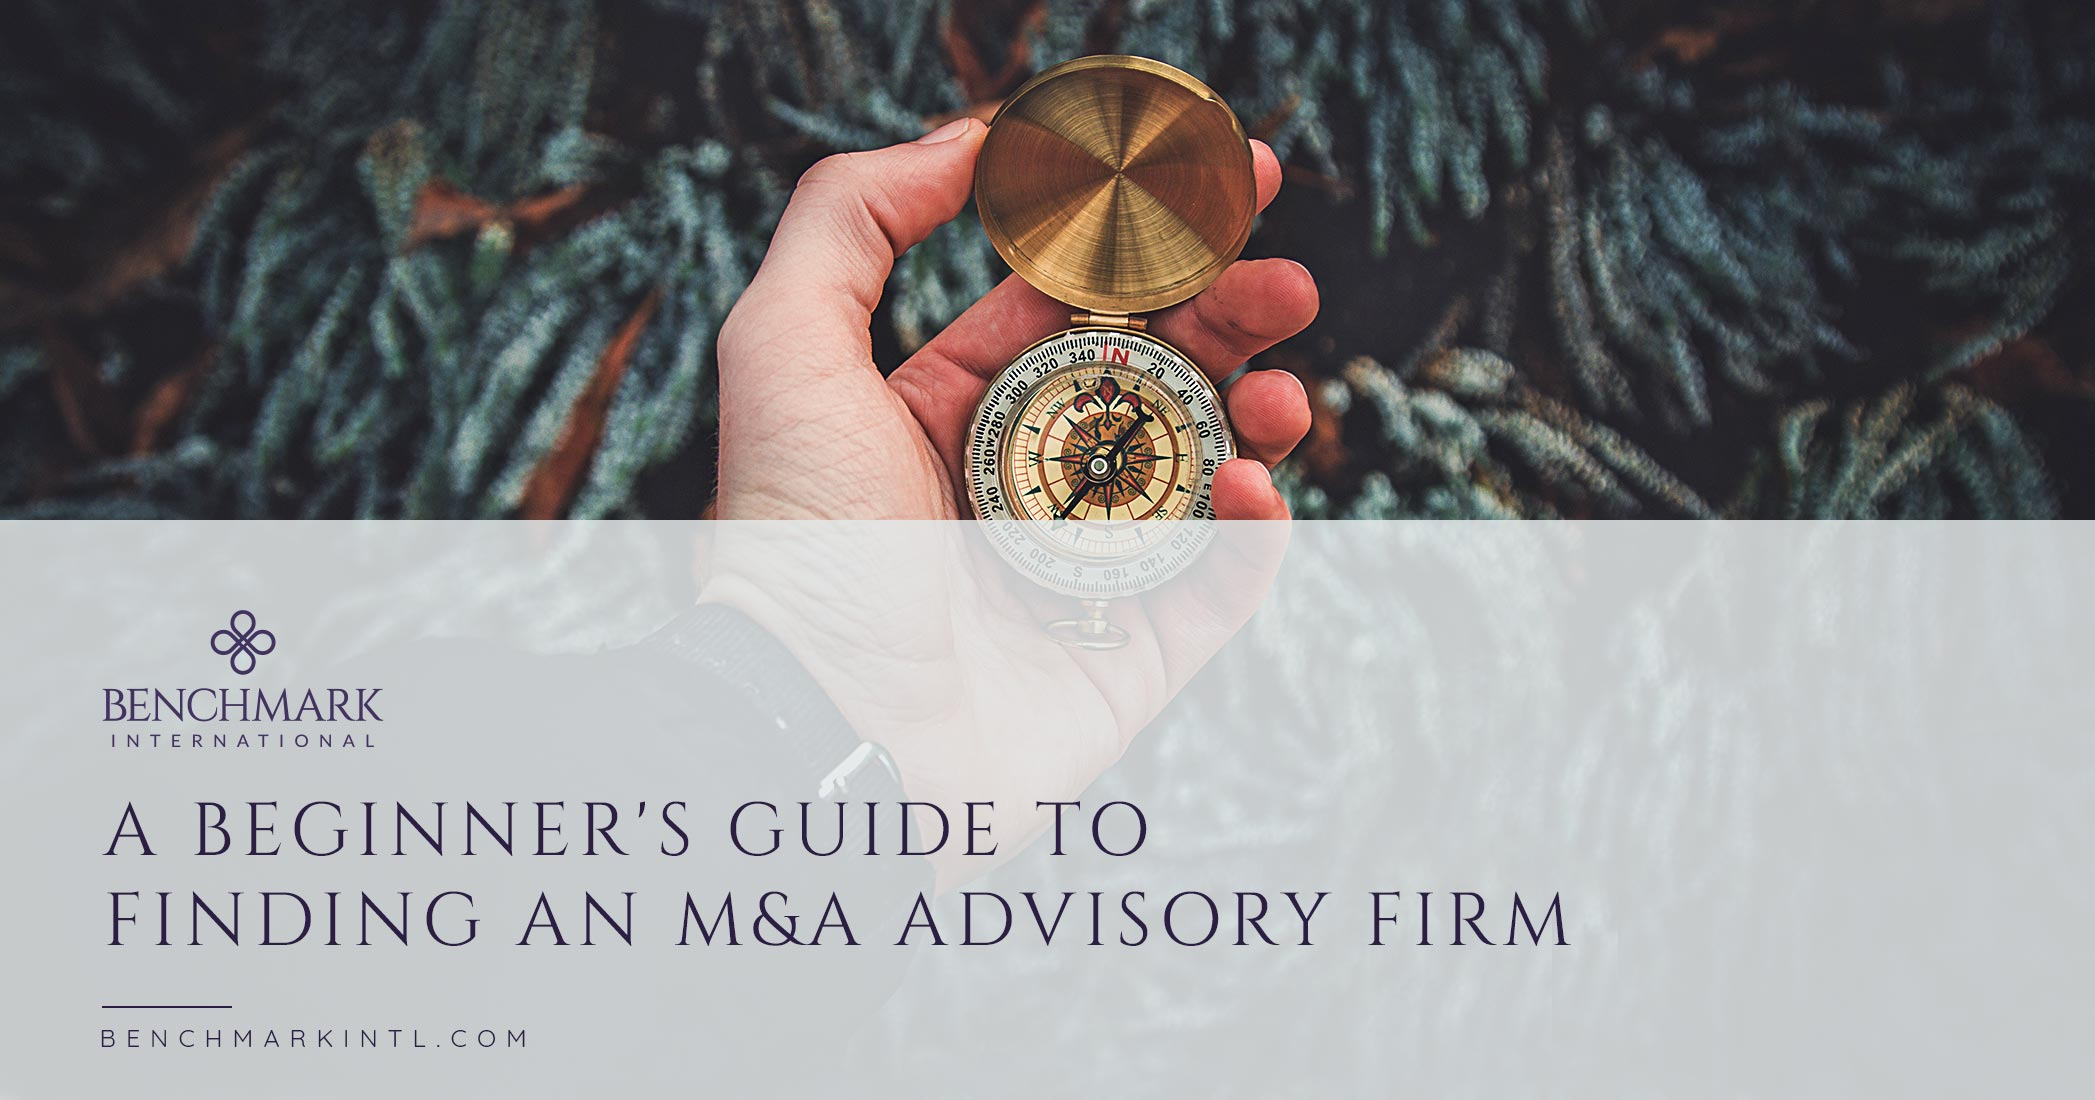 A Beginner's Guide To Finding An M&A Advisory Firm